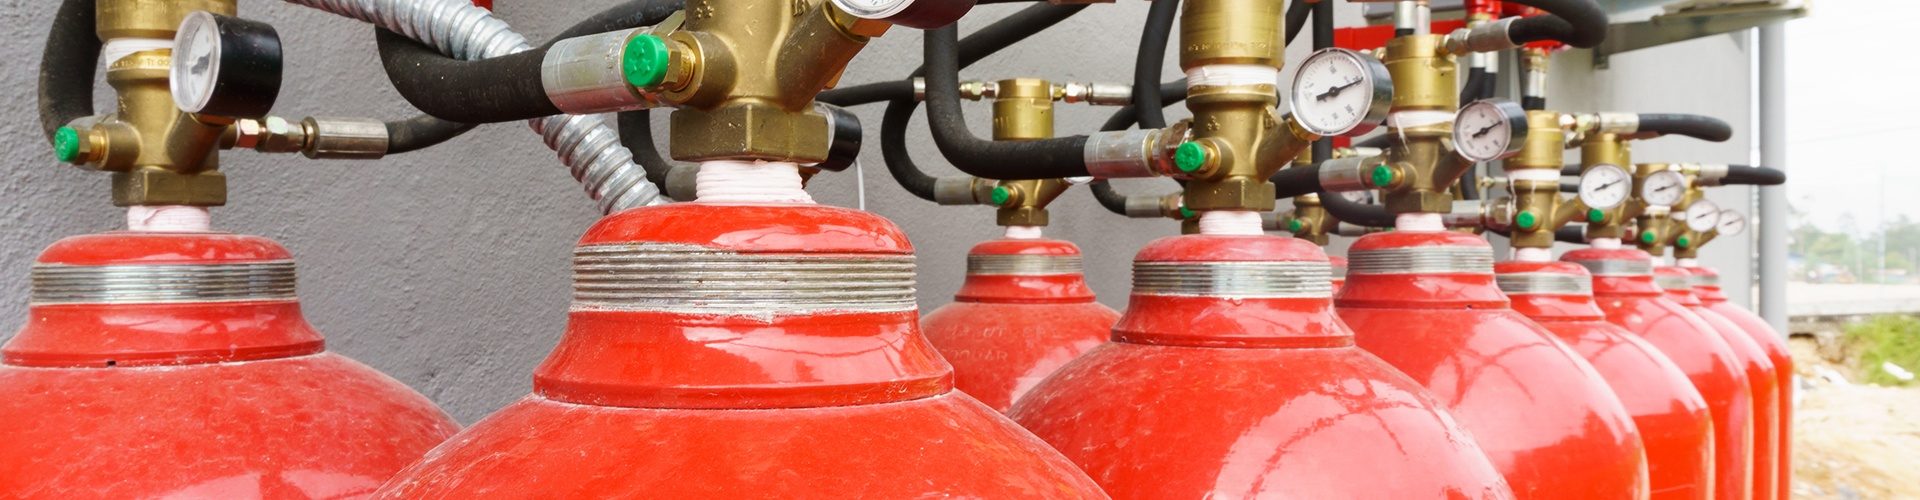 Storing Gas Cylinders Safely: 'Minor Storage' Requirements